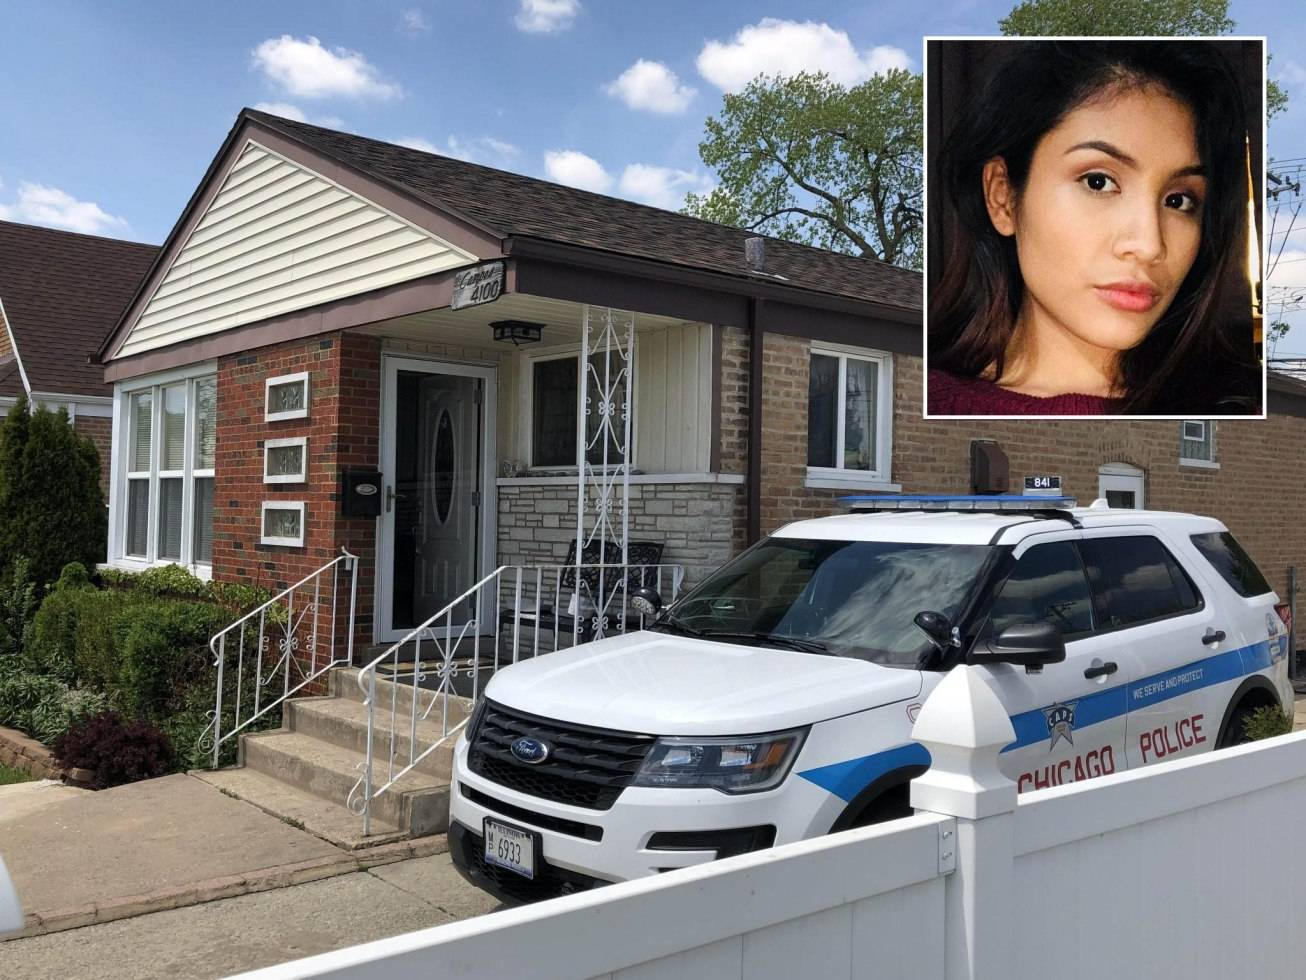 Photo courtesy of the Chicago Sun-TimesMarlen Ochoa-Lopez allegedly went to a home in the 4100 block of 77th Place the day she went missing, police sources said.